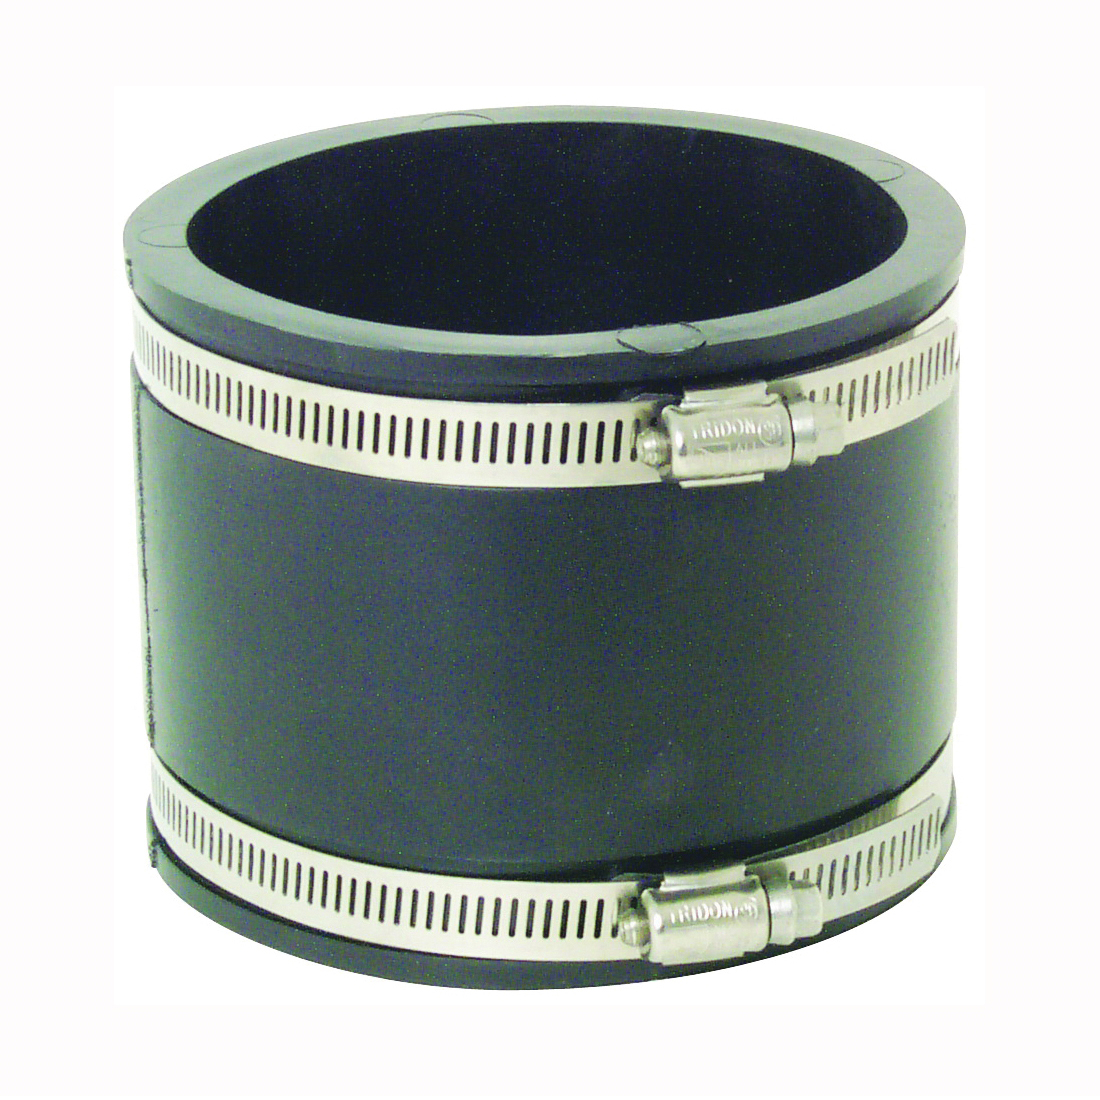 Picture of FERNCO P1056-44 Flexible Pipe Coupling, 4 in, PVC, Black, 4.3 psi Pressure